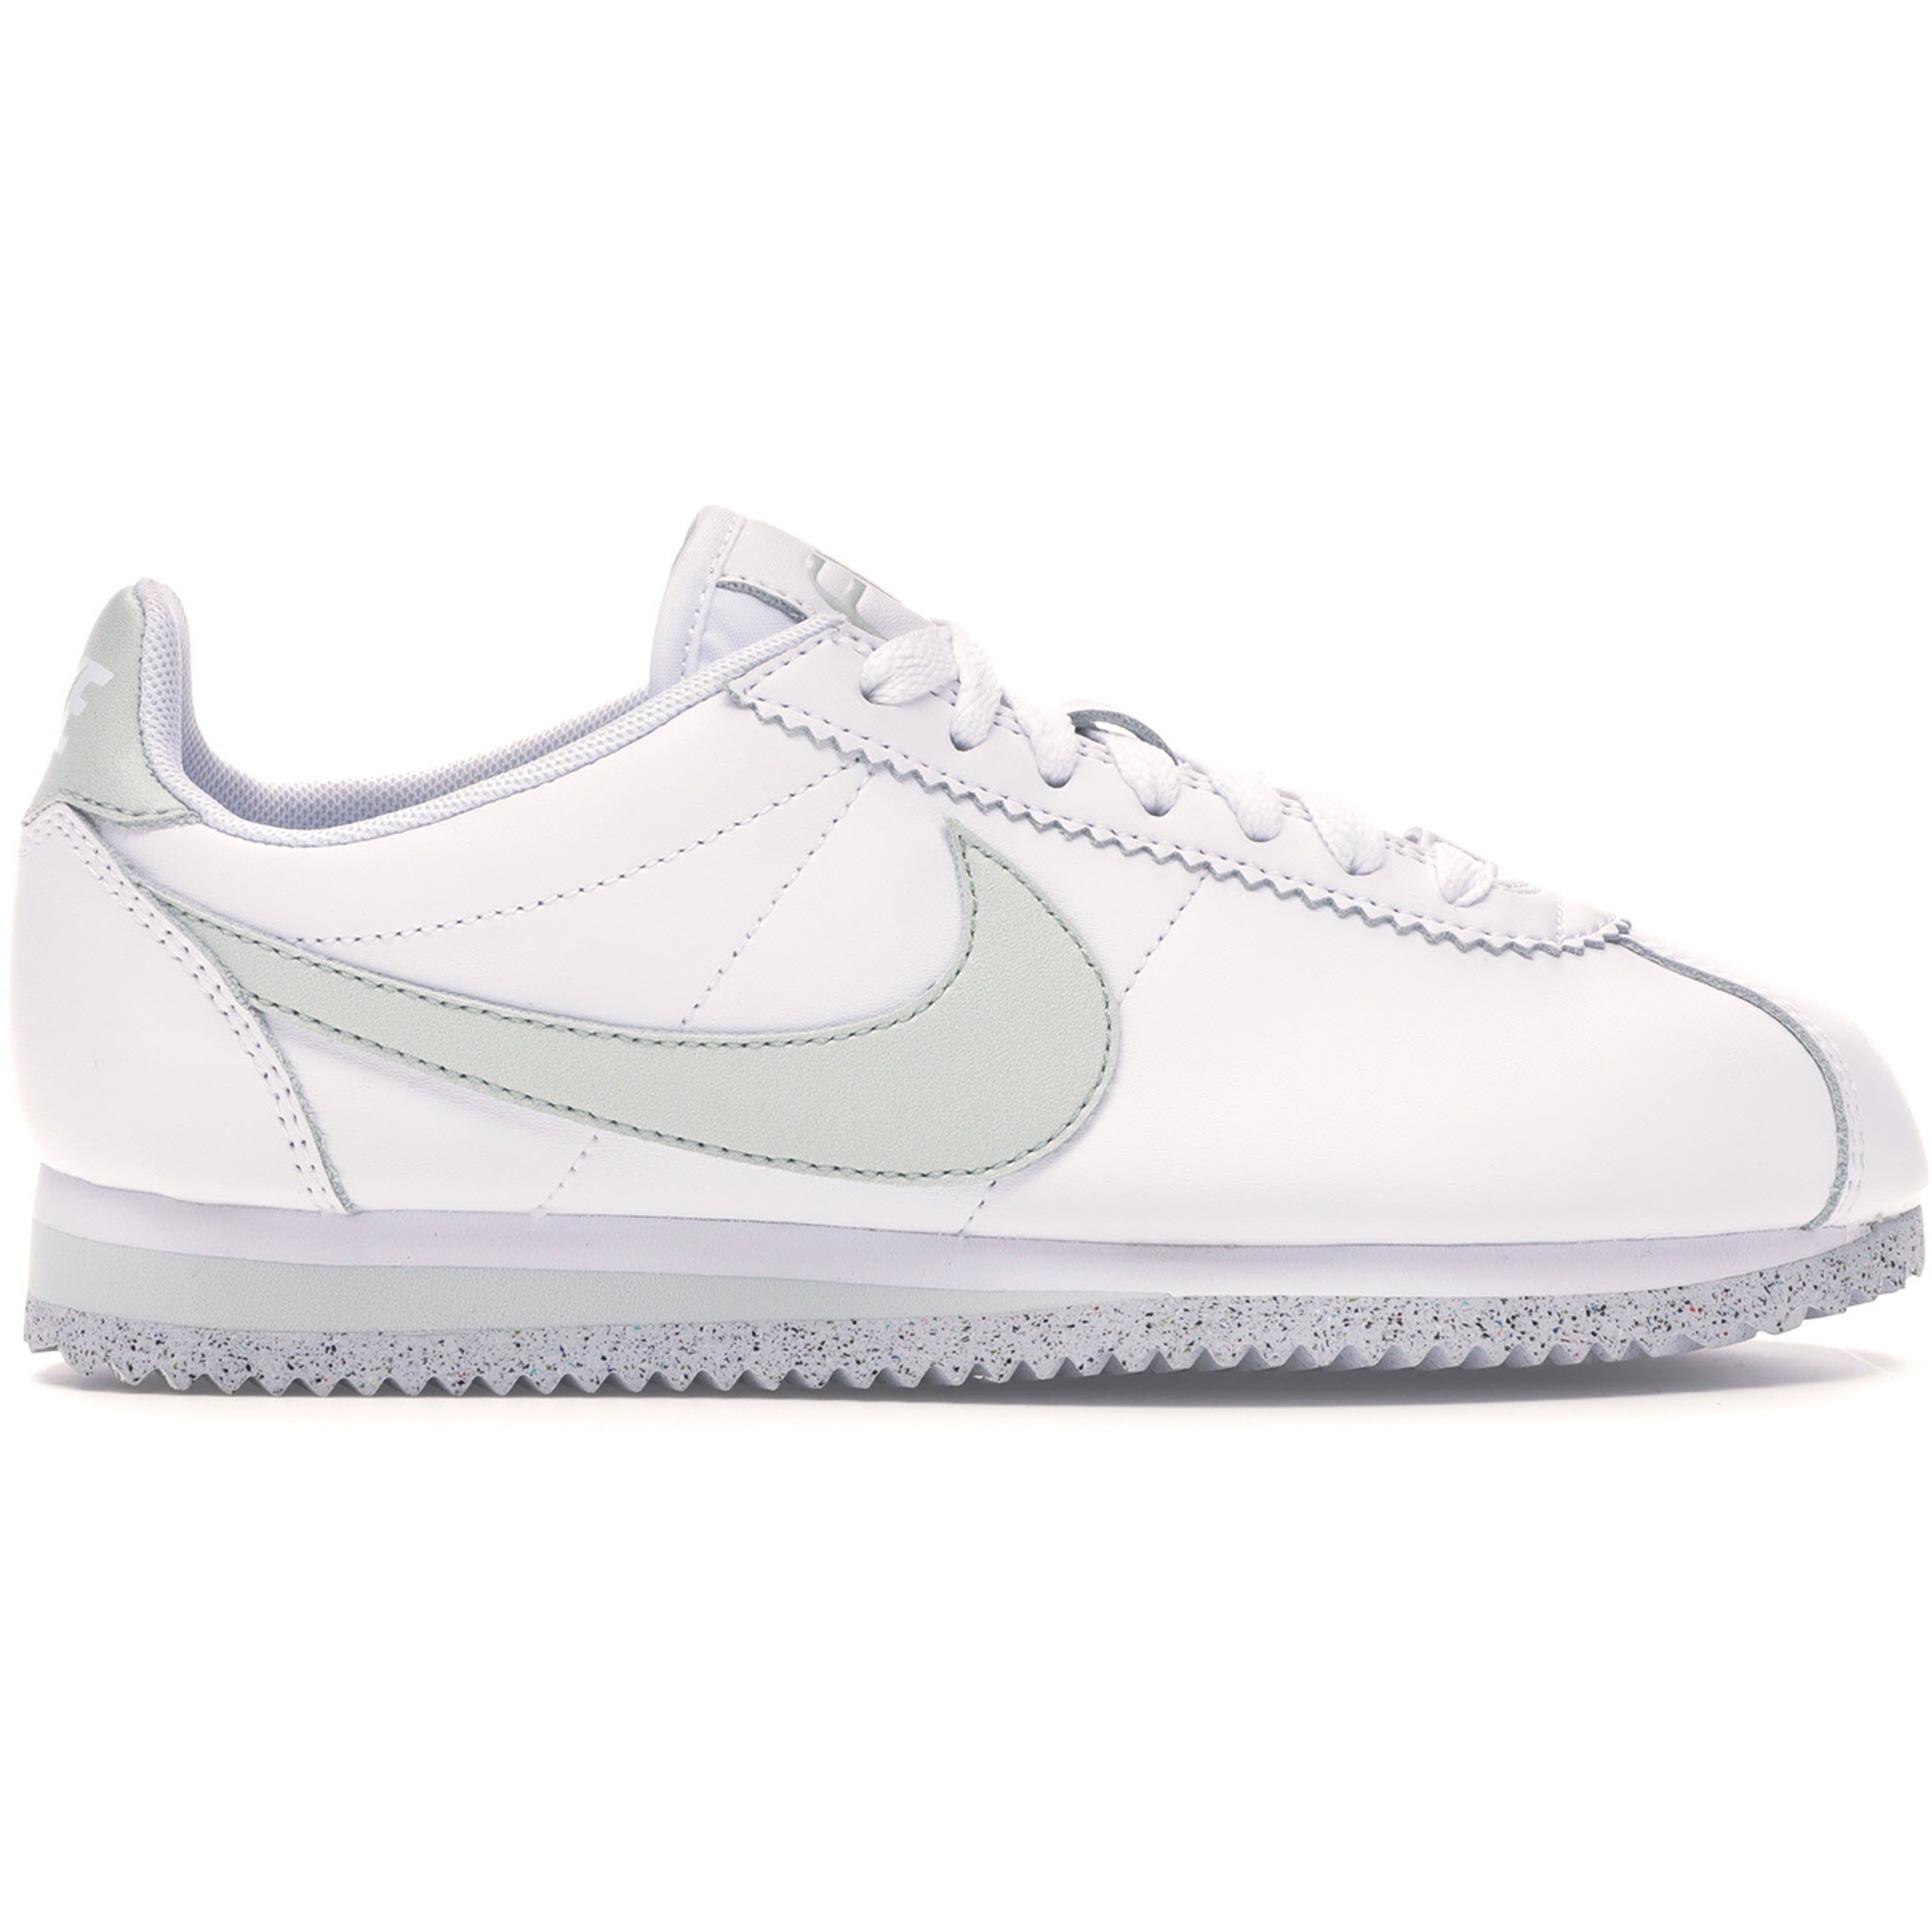 Nike Classic Cortez Flyleather White Light Silver (W) (AR4874-100)